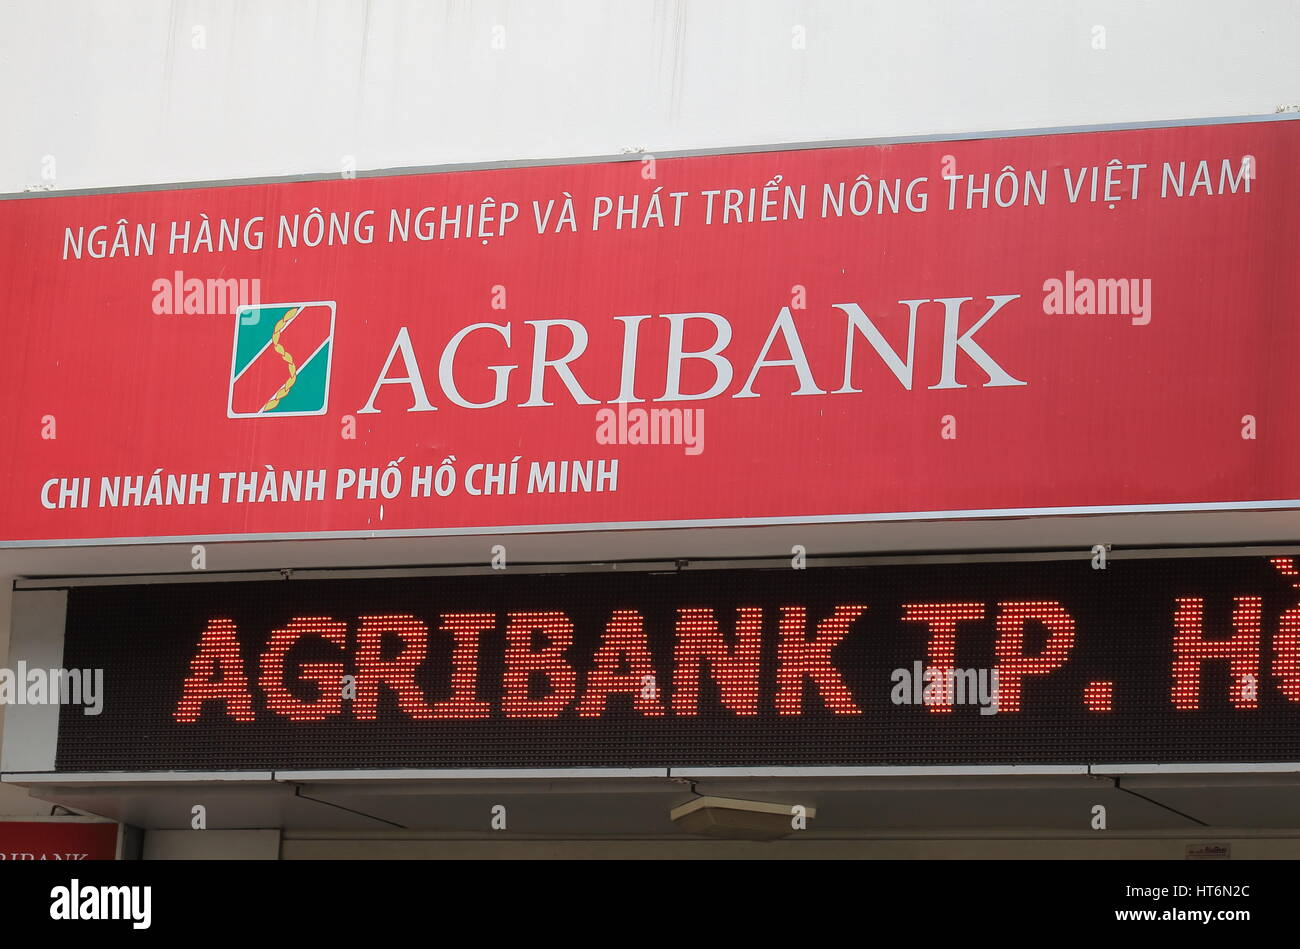 Vietnam Bank for Agriculture and Rural Development known as Agribank is the largest commercial bank in Vietnam by - Stock Image